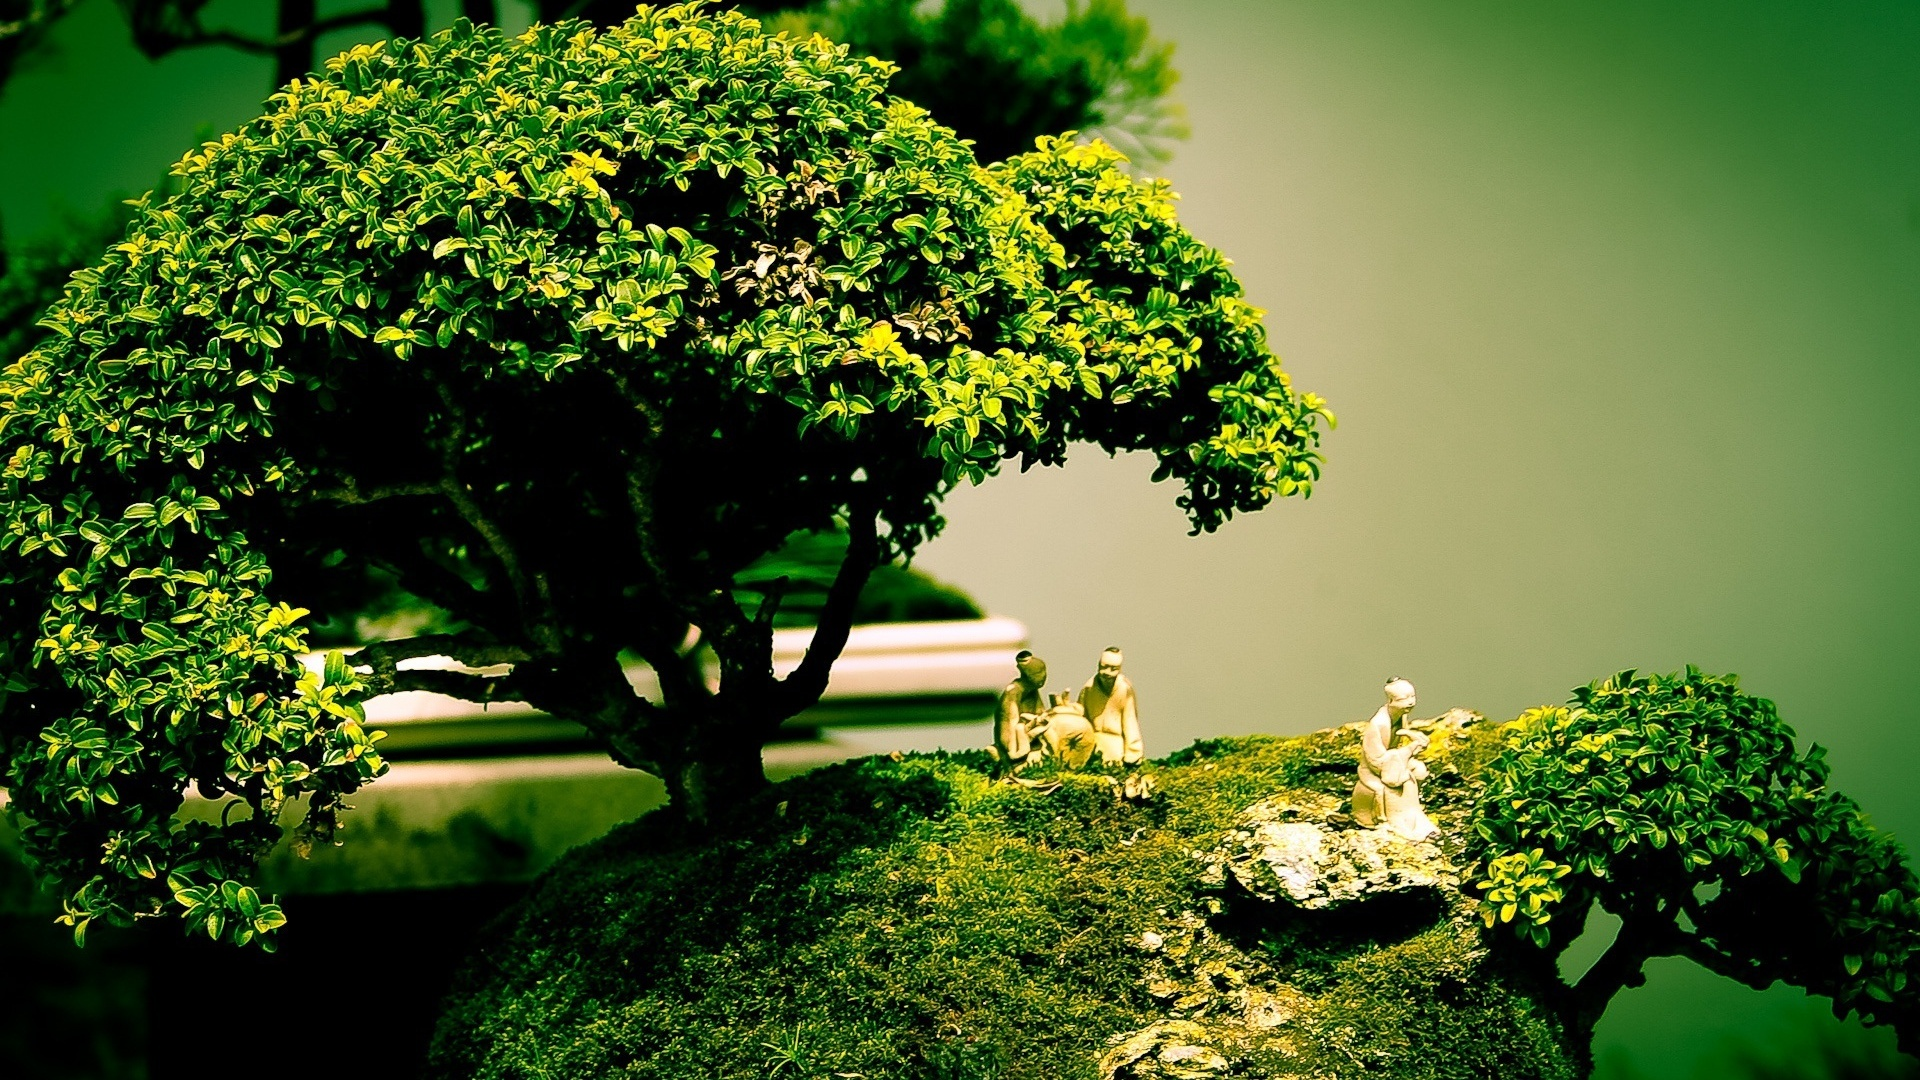 bonsai-tree-art-1920x1080-wallpaper-wp3803386